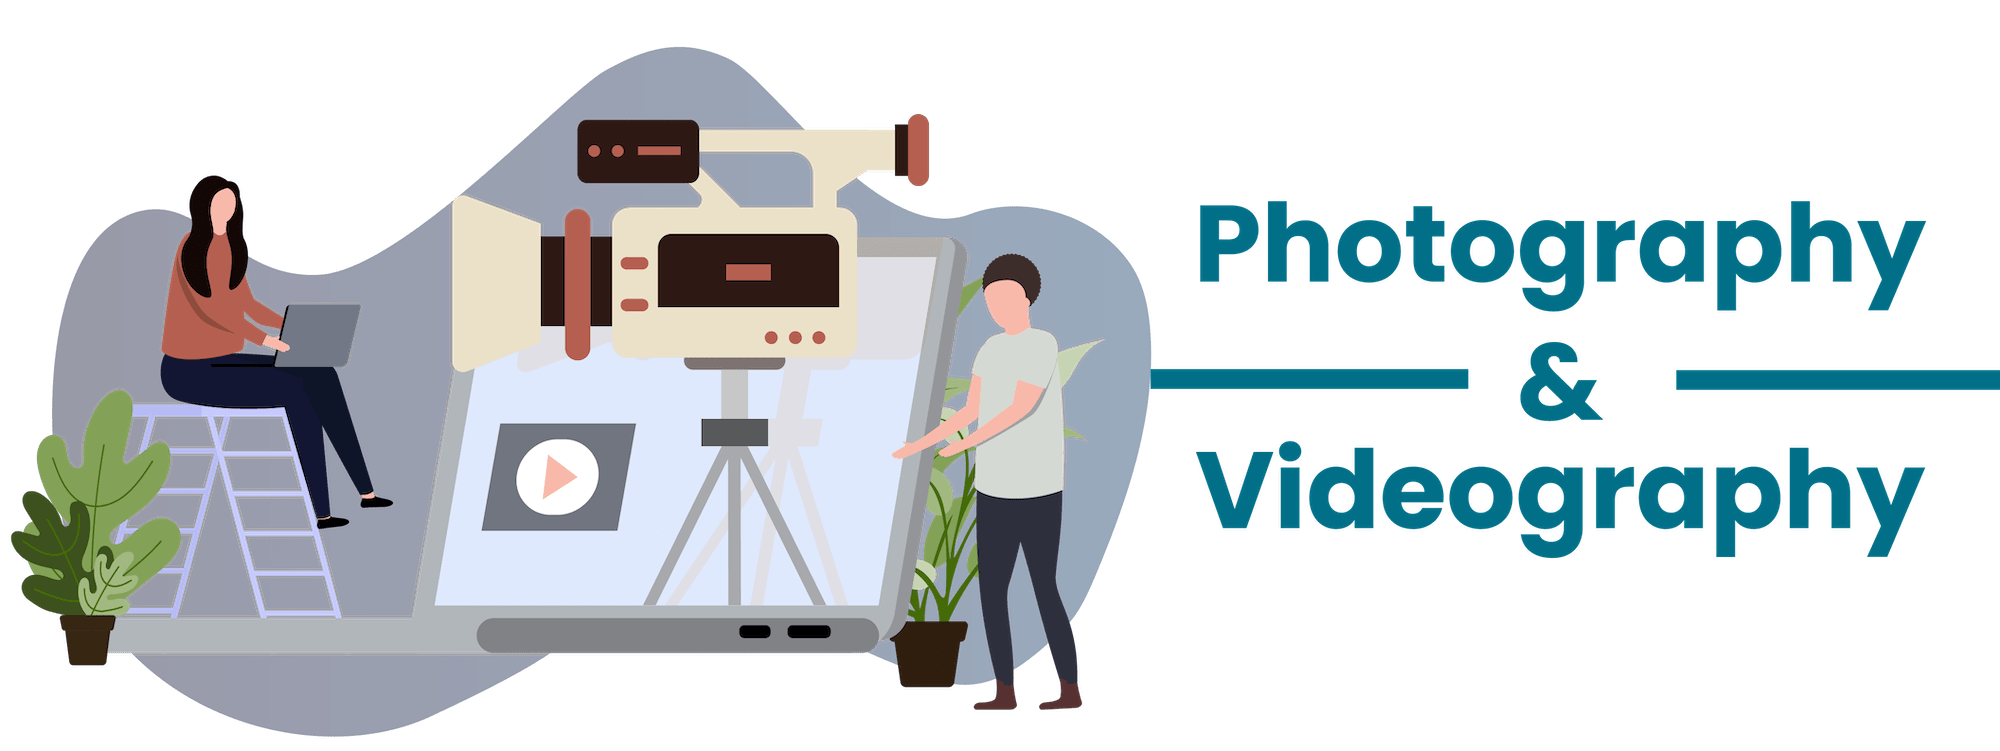 photography videography banner